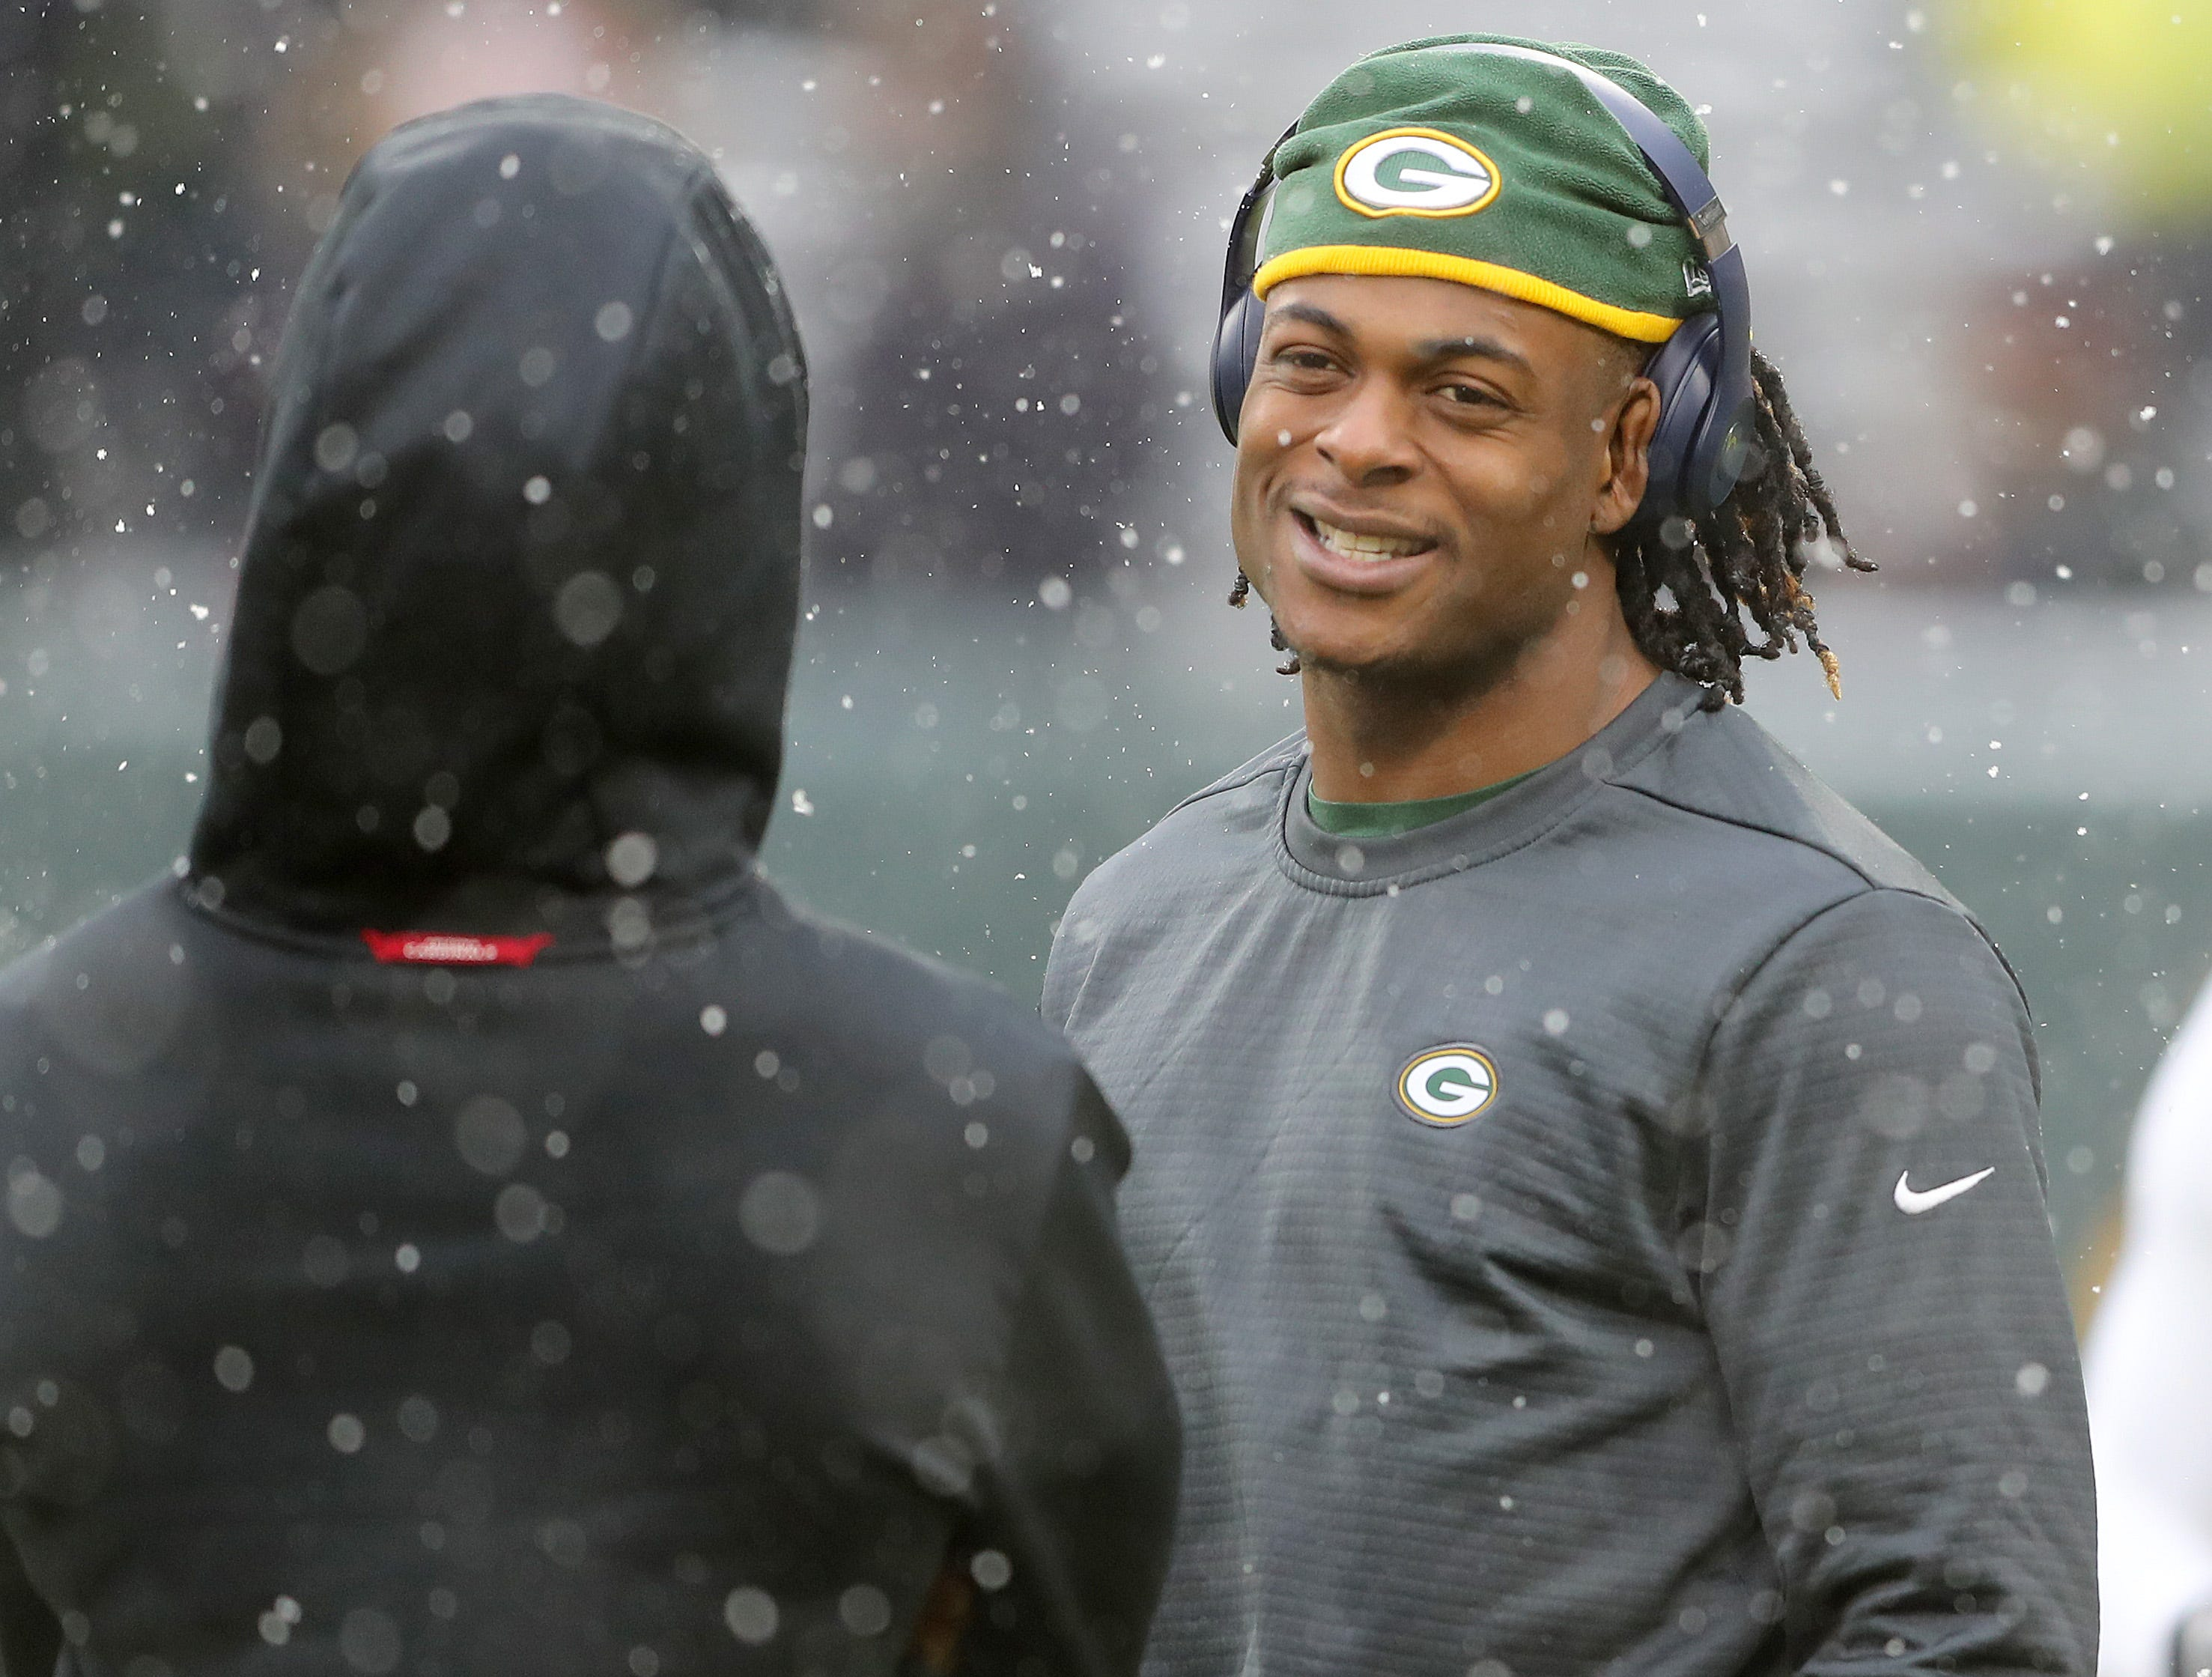 Green Bay Packers wide receiver Davante Adams (17) walks with a friend before the game against the Arizona Cardinals Sunday, December 2, 2018 at Lambeau Field in Green Bay, Wis.